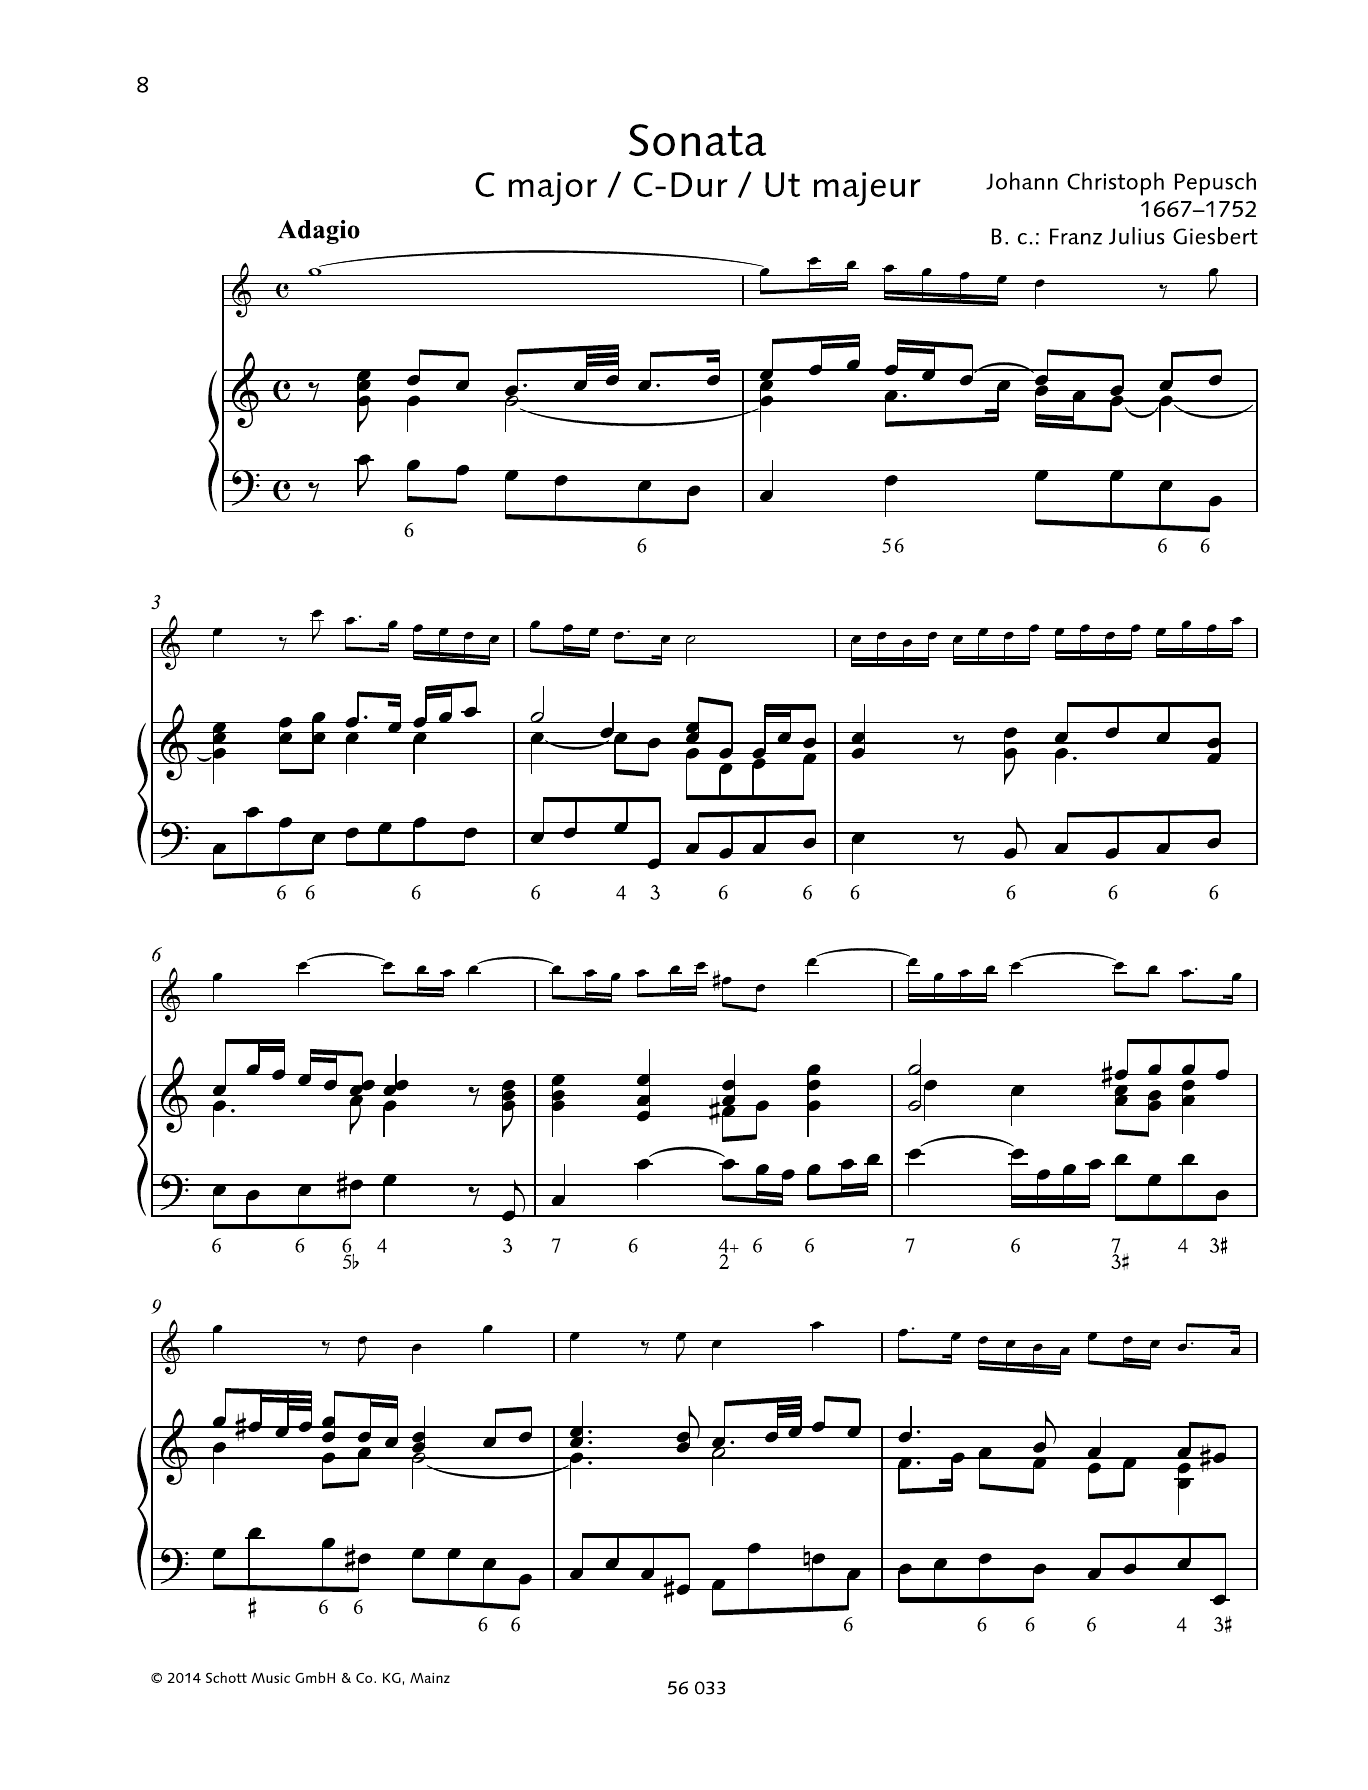 Sonata C Major Sheet Music